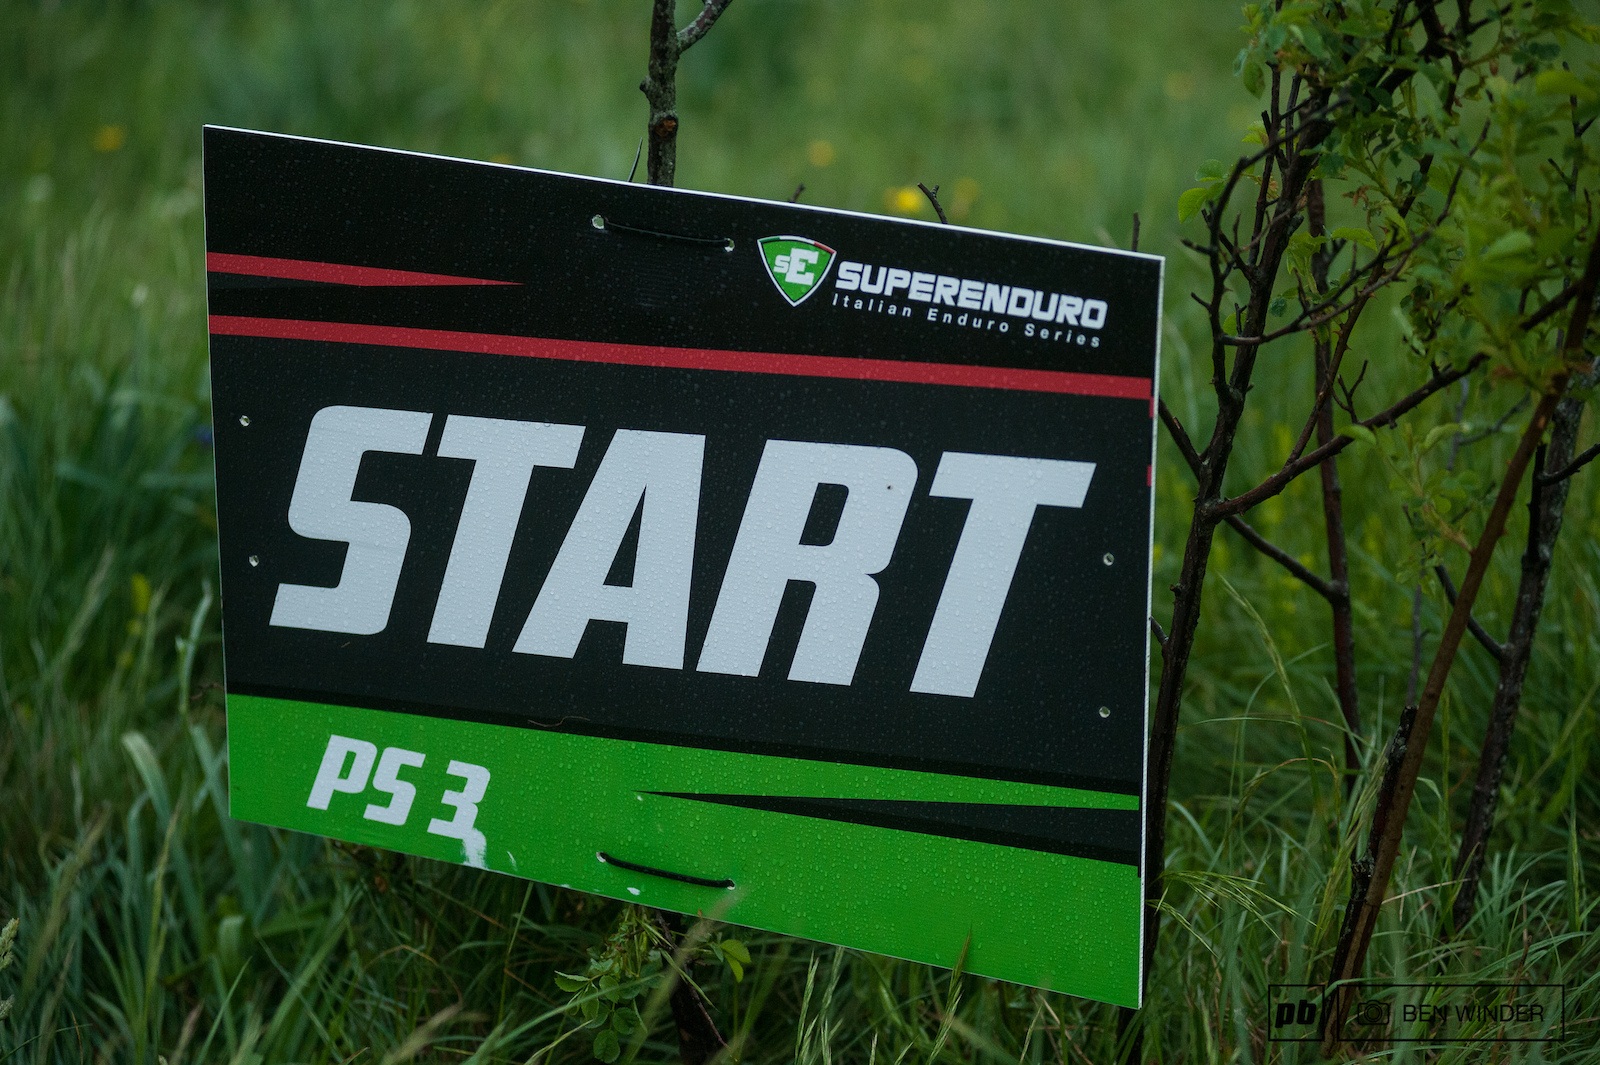 Due to the cancelled stage PS3 now became the first stage of the day and was also raced twice.